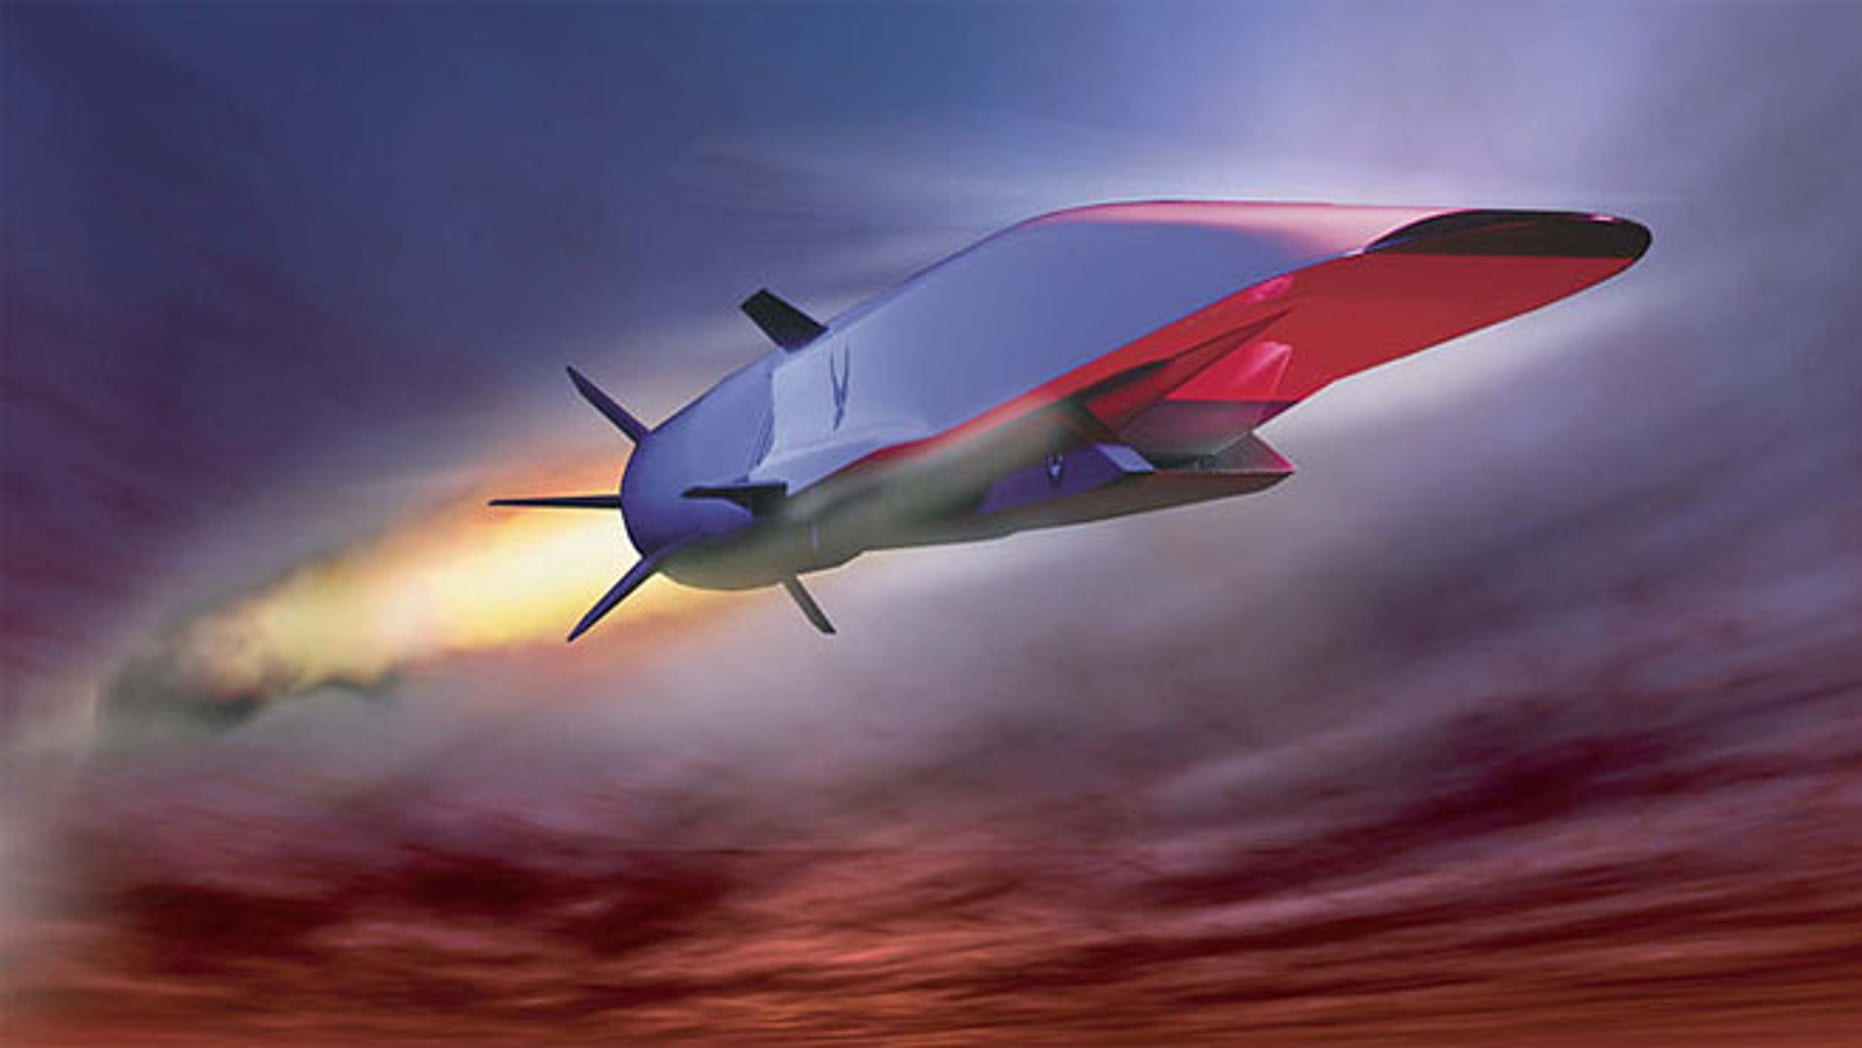 Artist's concept of the X-51A WaveRider during flight